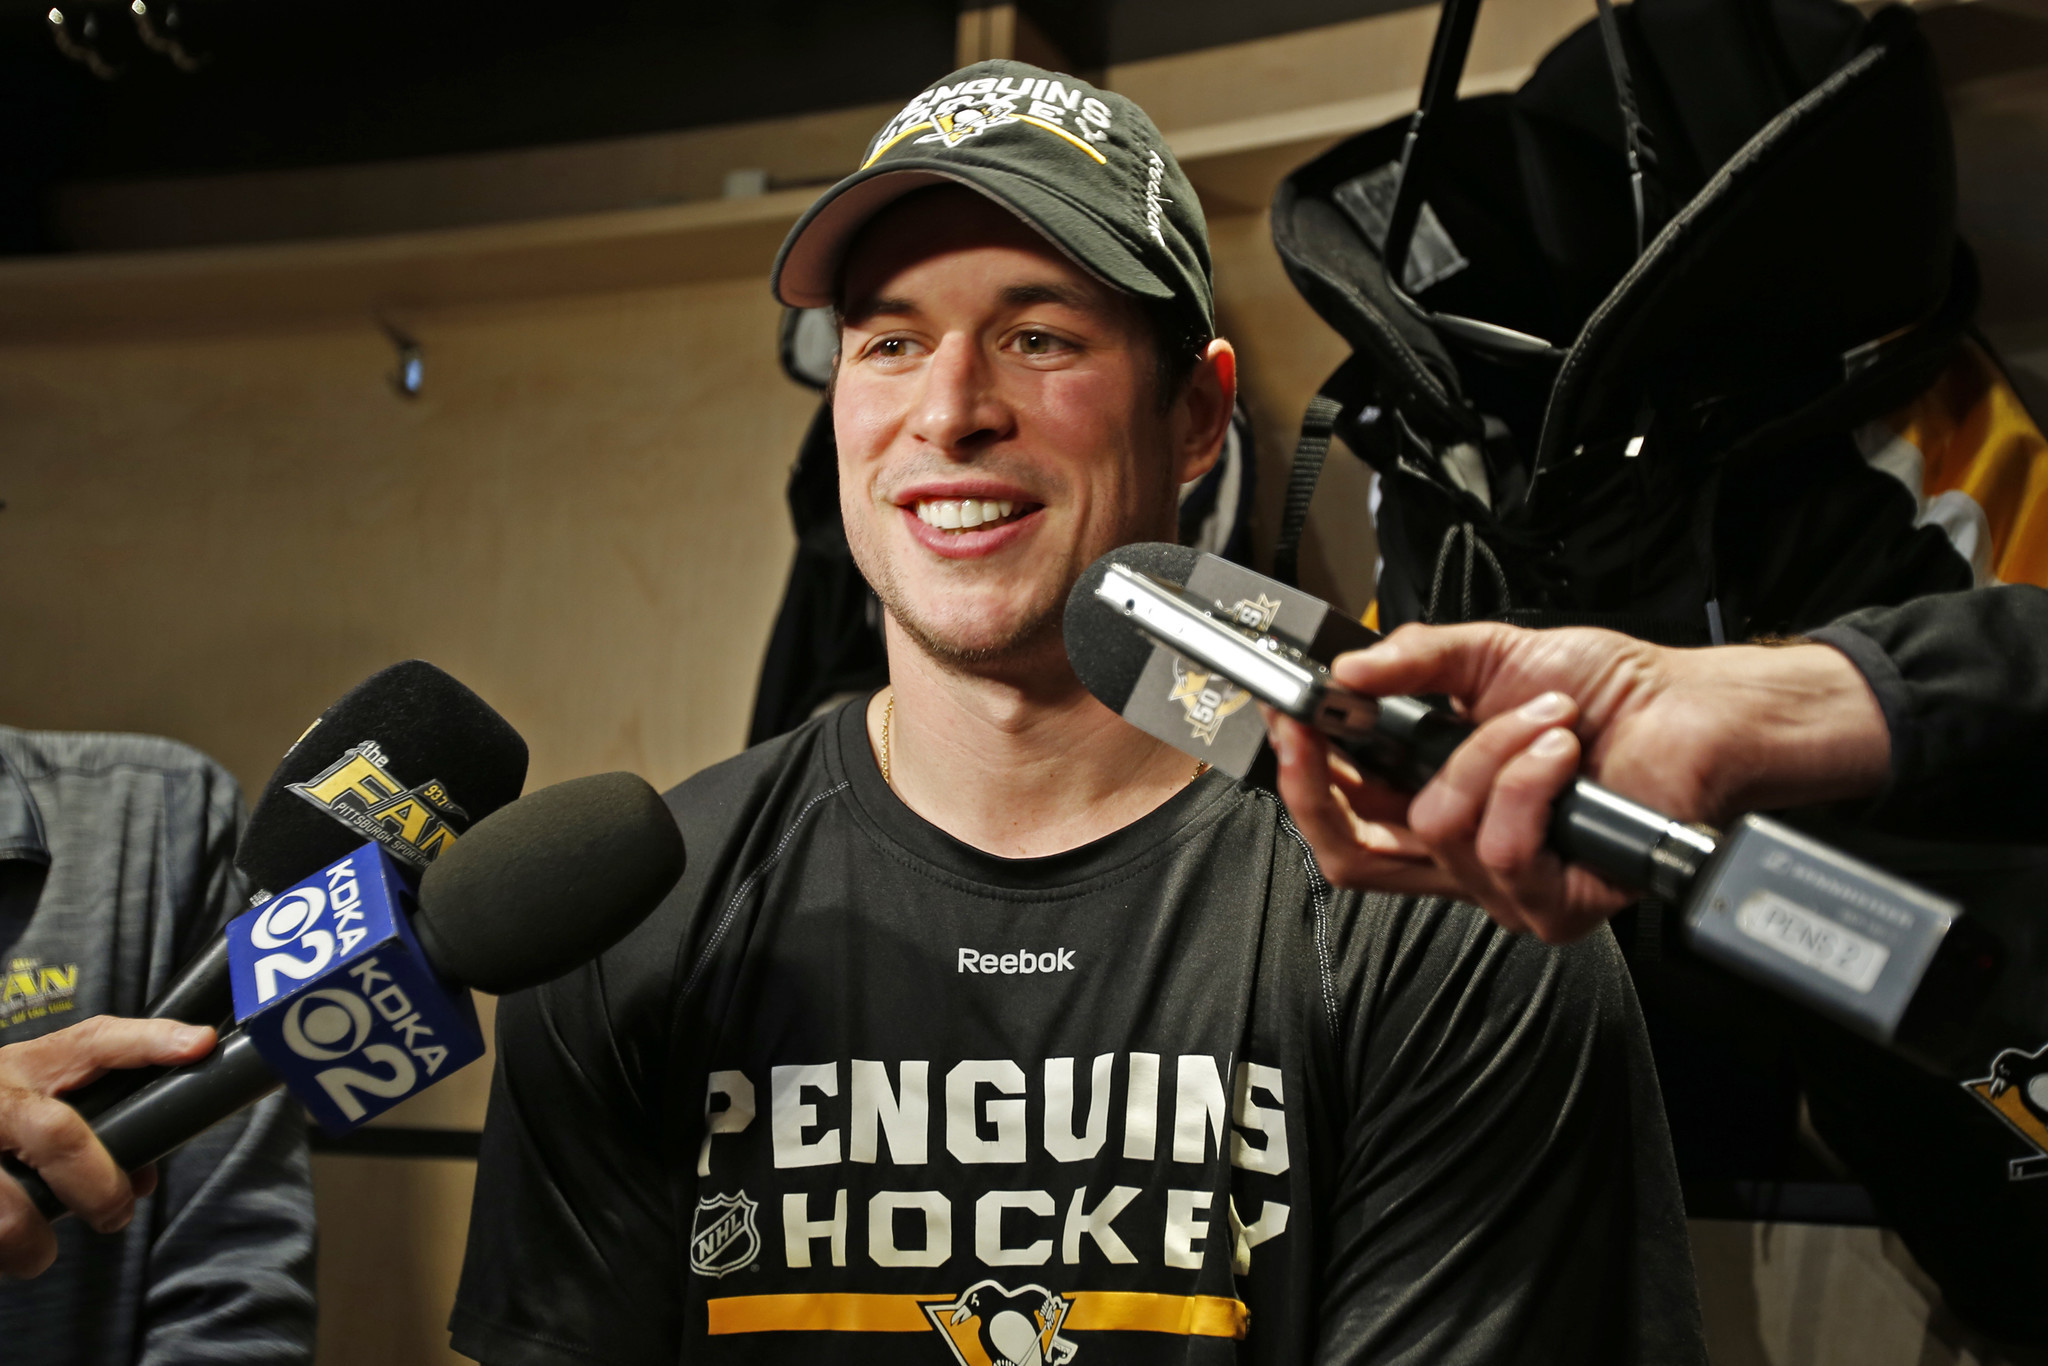 Sfl-penguins-star-sidney-crosby-could-return-tonight-against-panthers-20161025